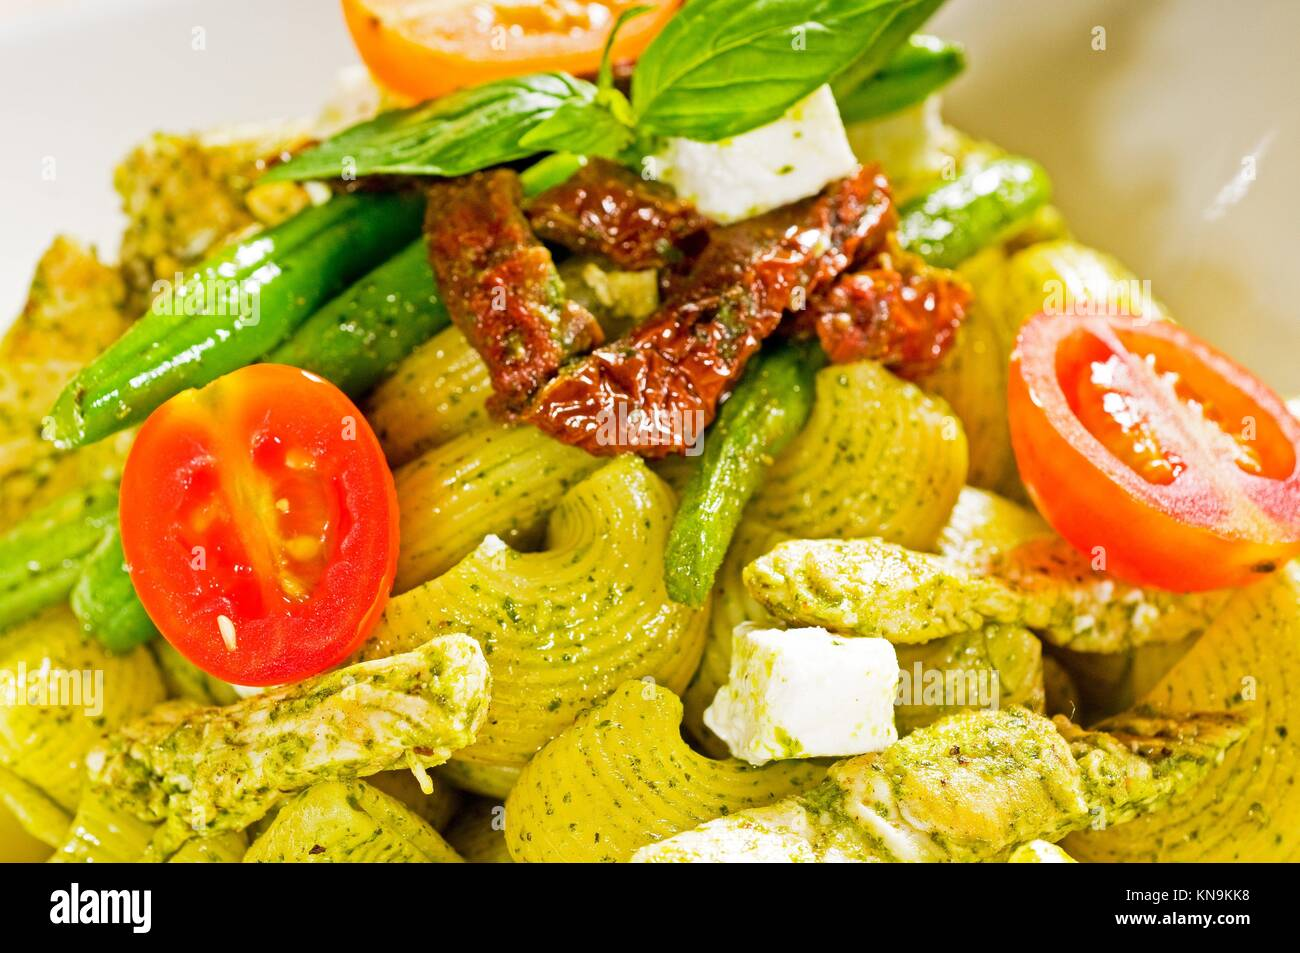 fresh lumaconi pasta and pesto sauce with vegetables and sundried tomatoes,tipycal italian food. - Stock Image